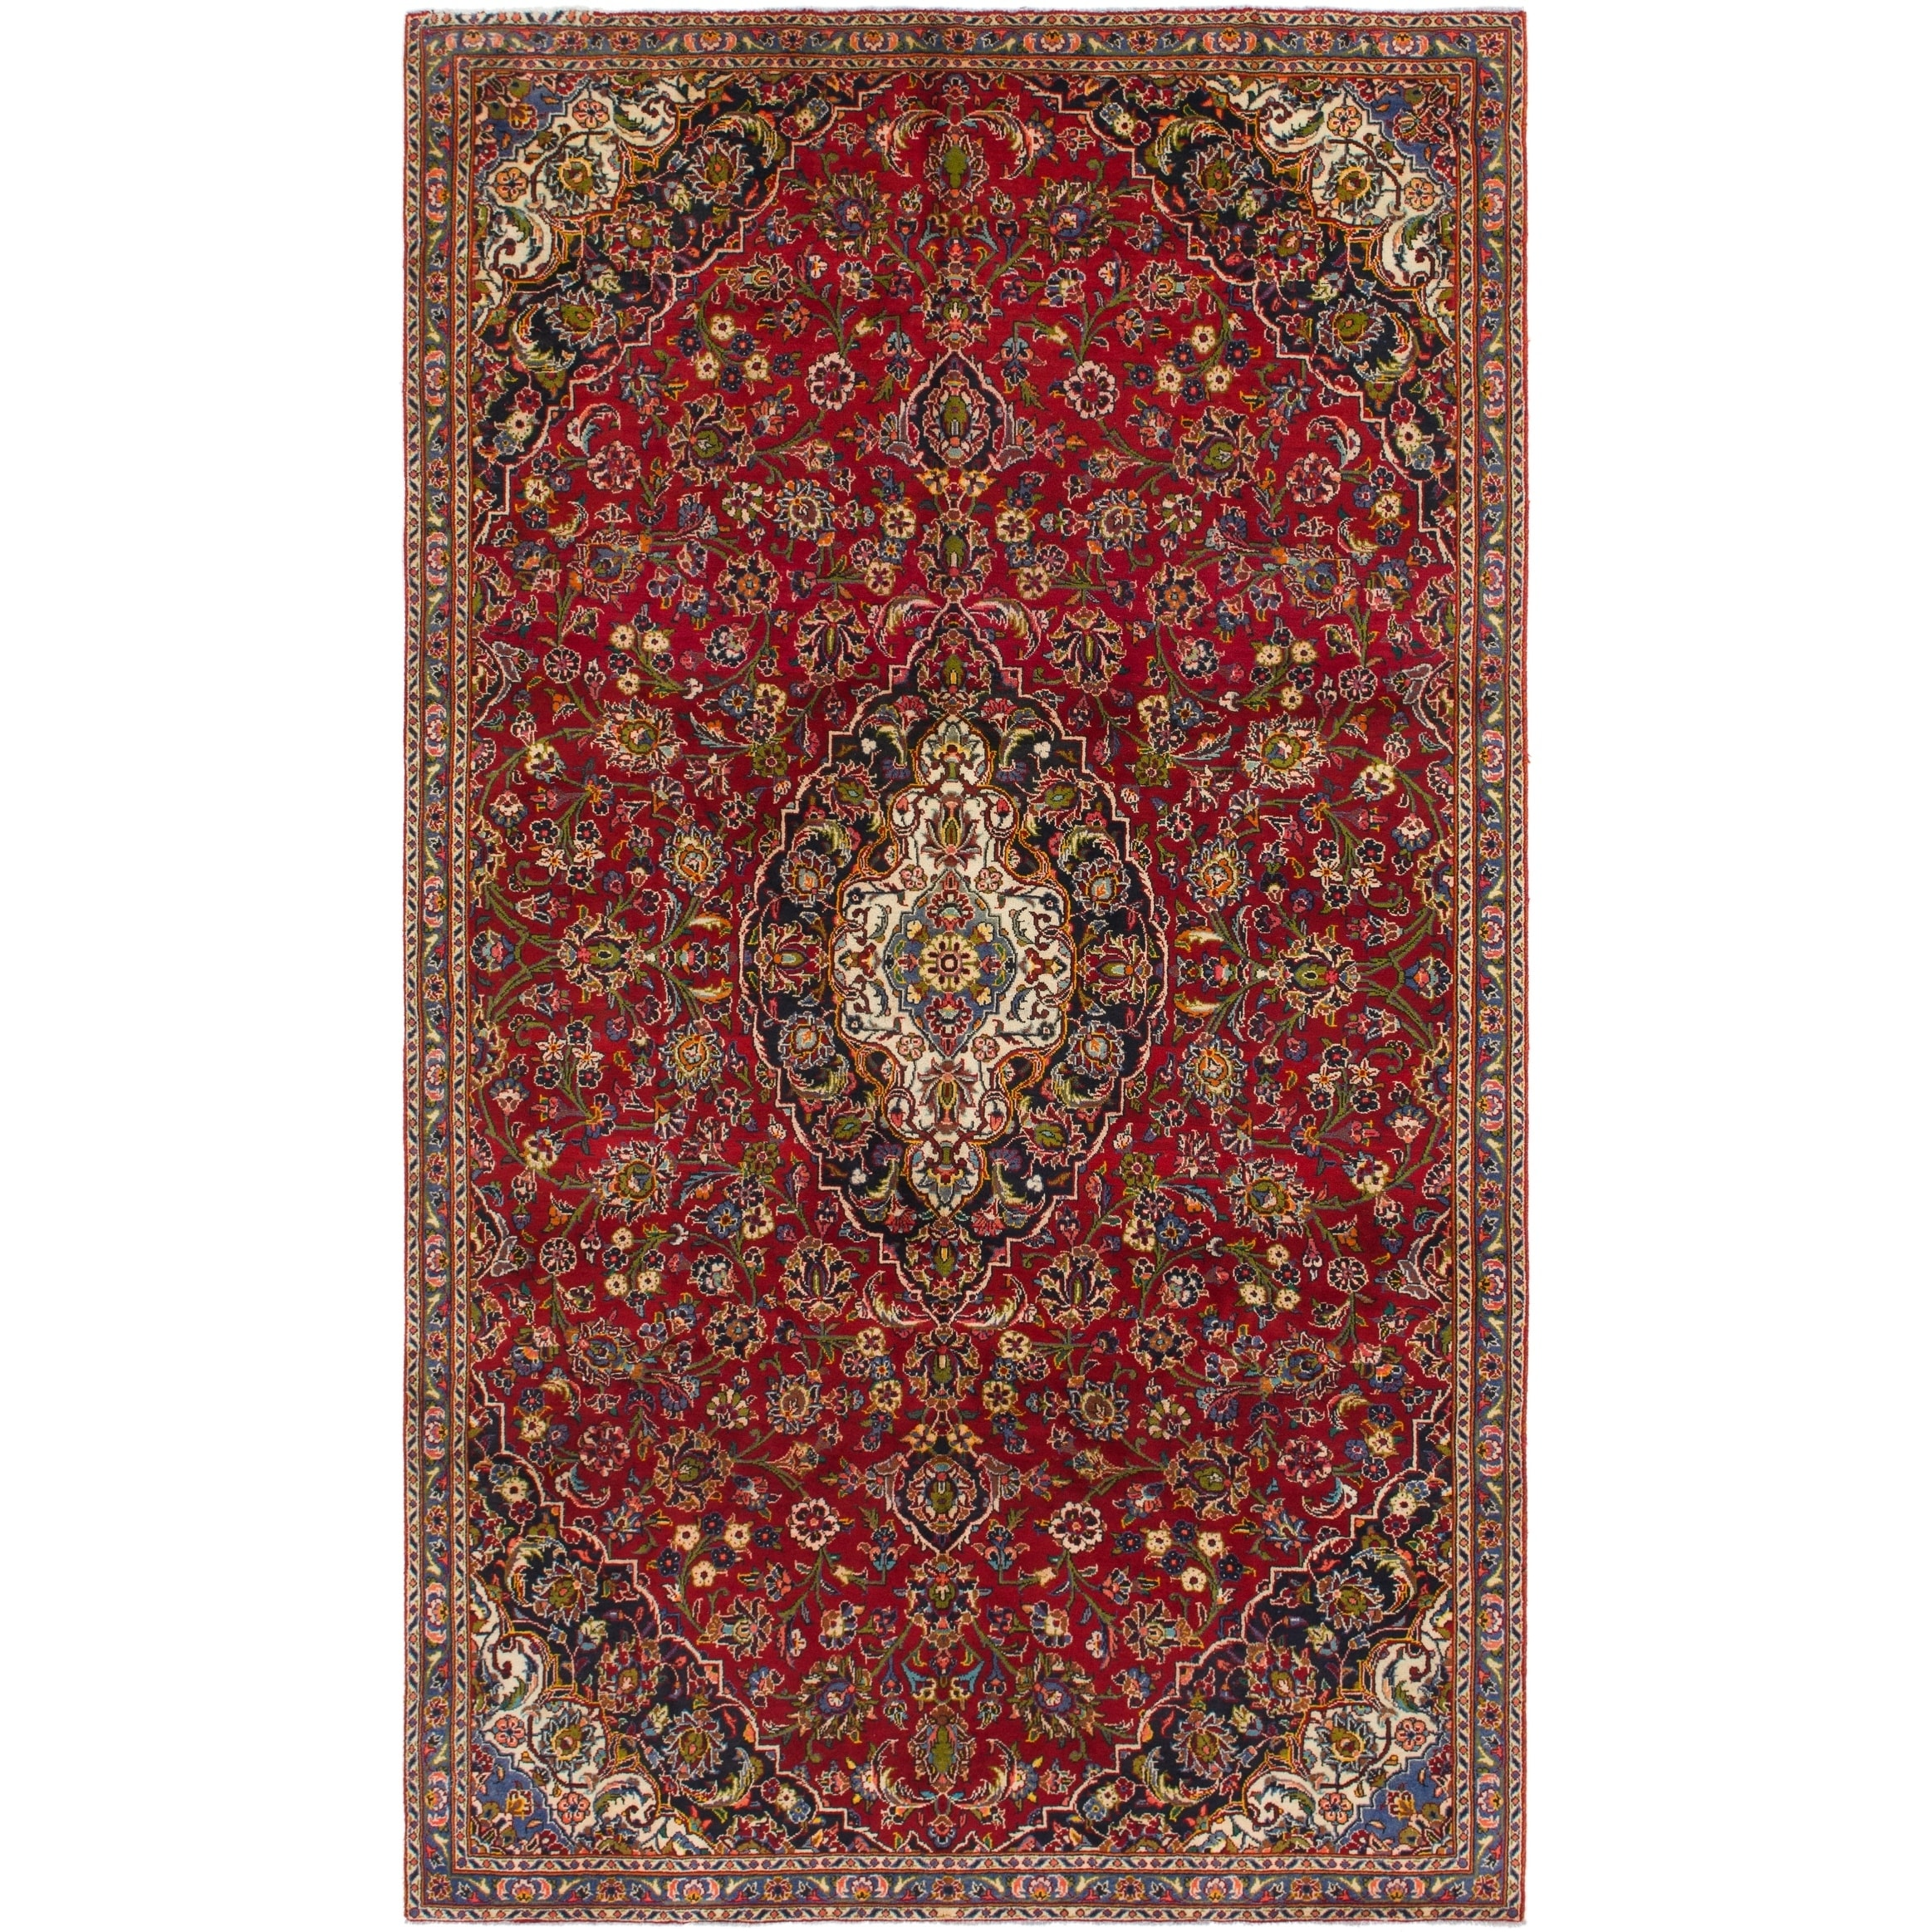 Hand Knotted Kashan Semi Antique Wool Area Rug - 6 9 x 11 7 (Red - 6 9 x 11 7)